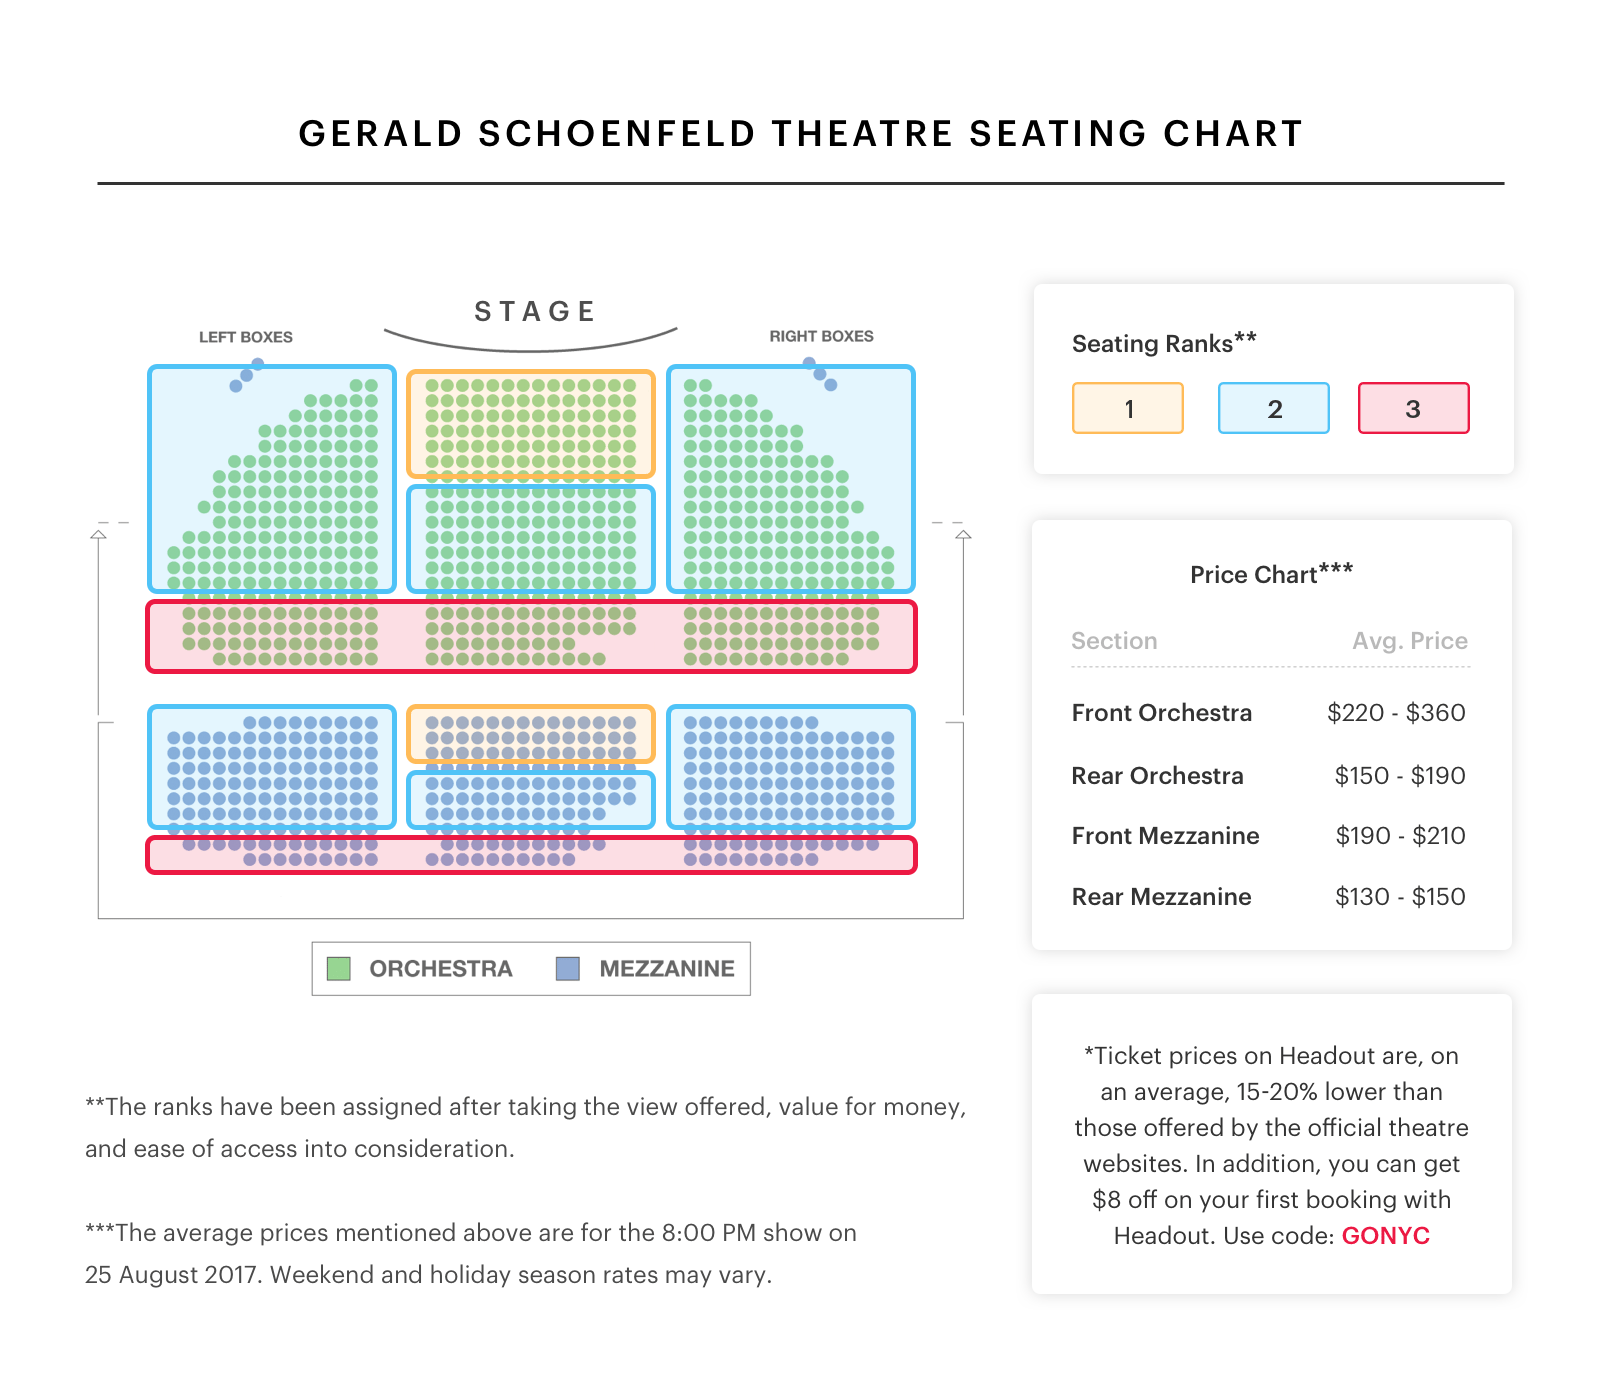 Navigating The Schoenfeld Theatre Seating Chart